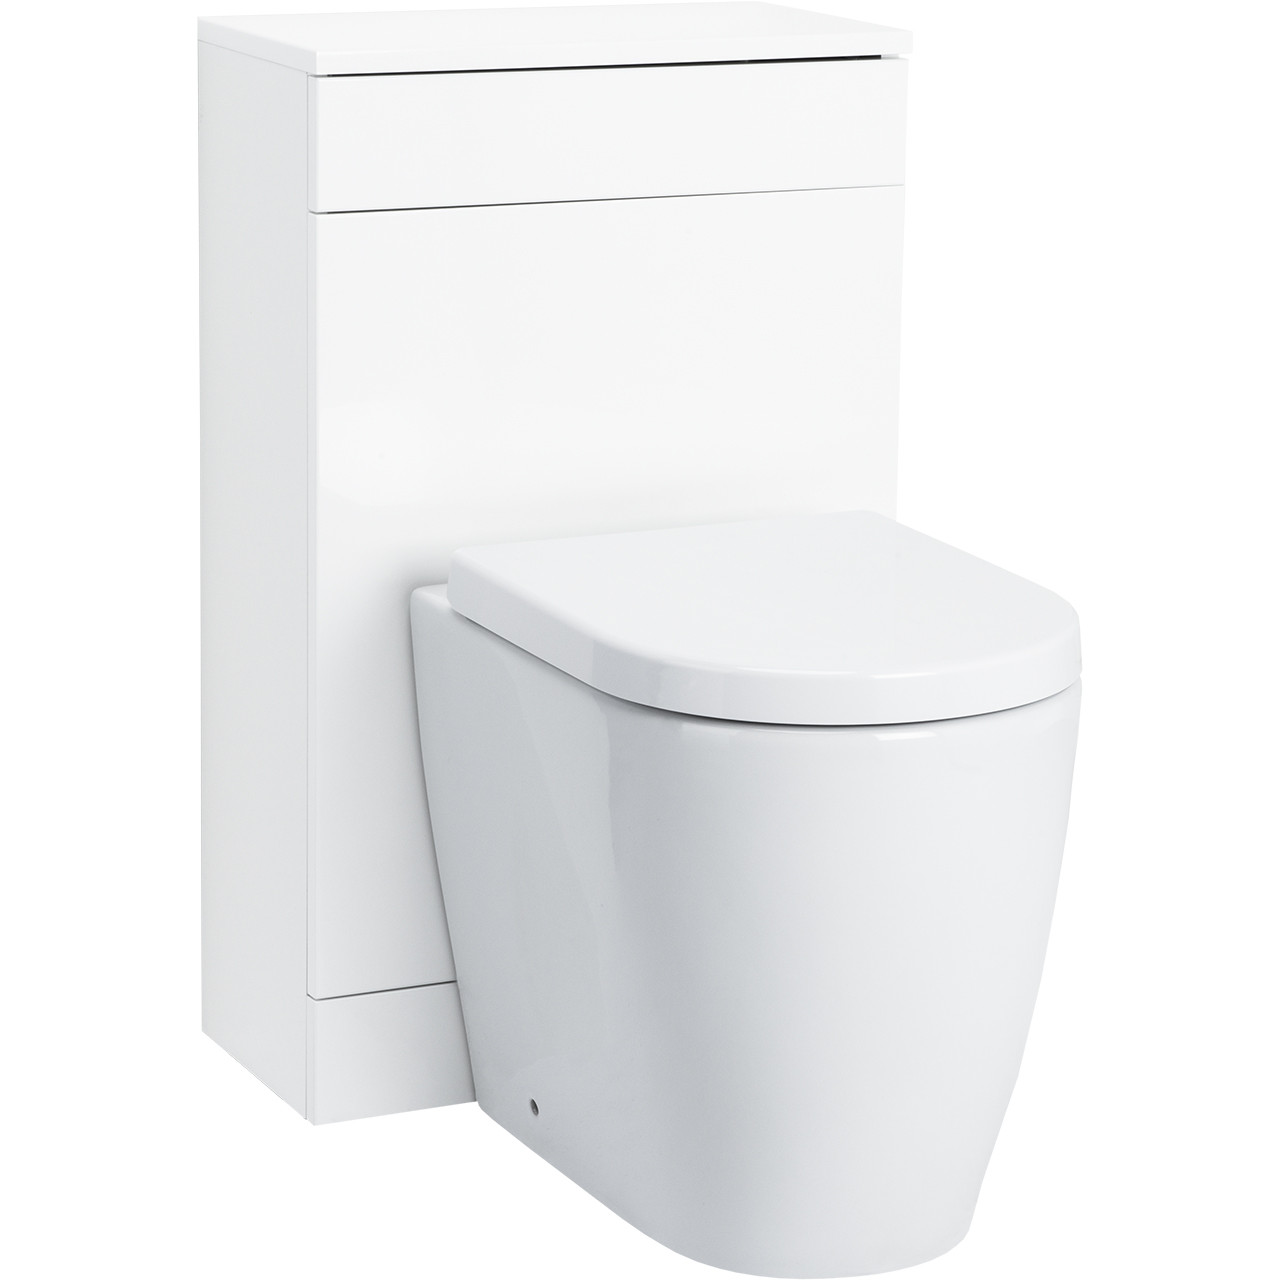 Napoli 500 WC Unit Gloss White